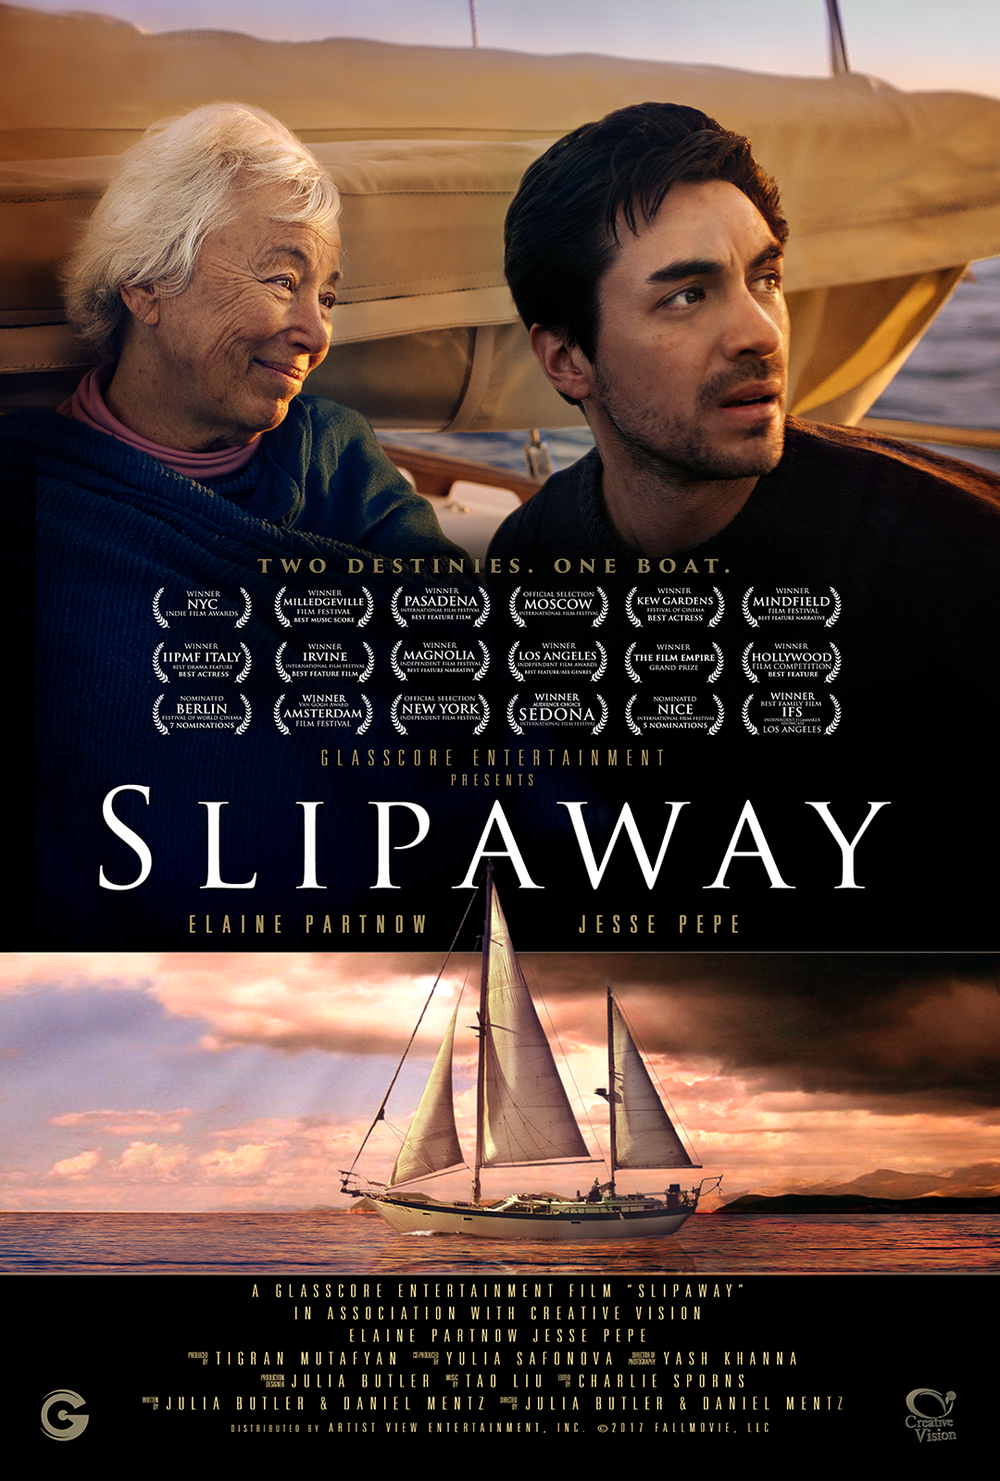 Slipaway Poster 27x40 with 18 laurels (no banner) 1080.png